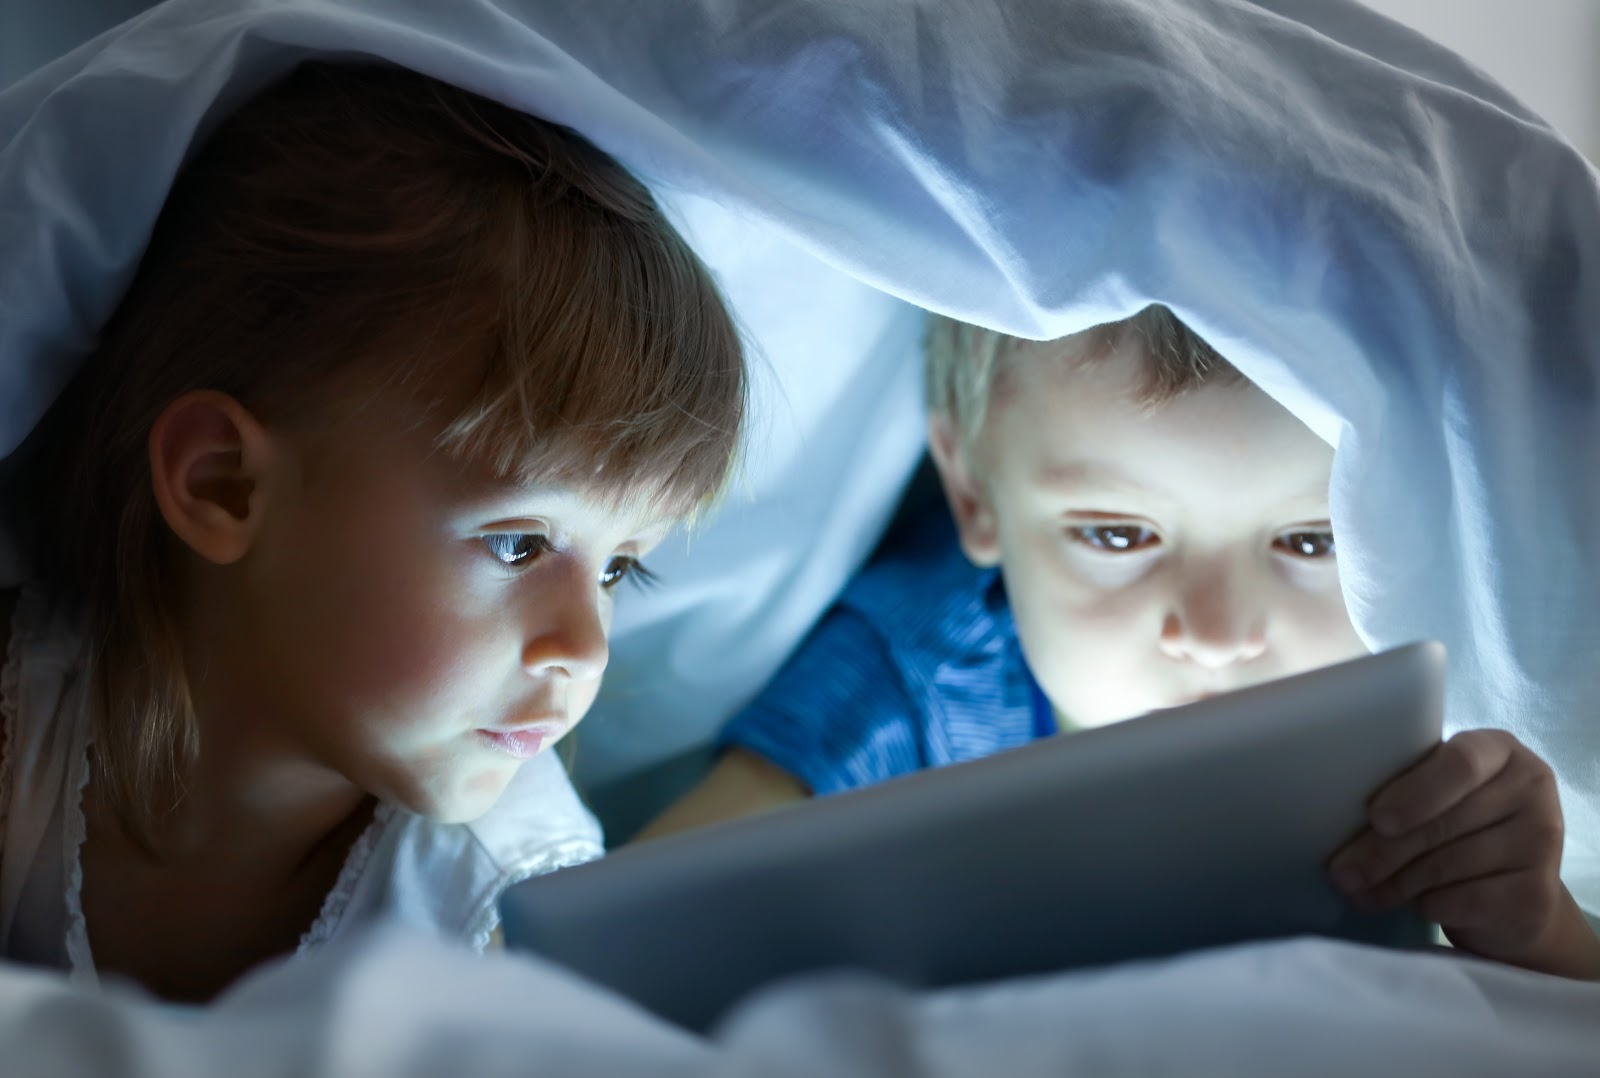 Young boy and girl under the covers  looking at an ipad screen